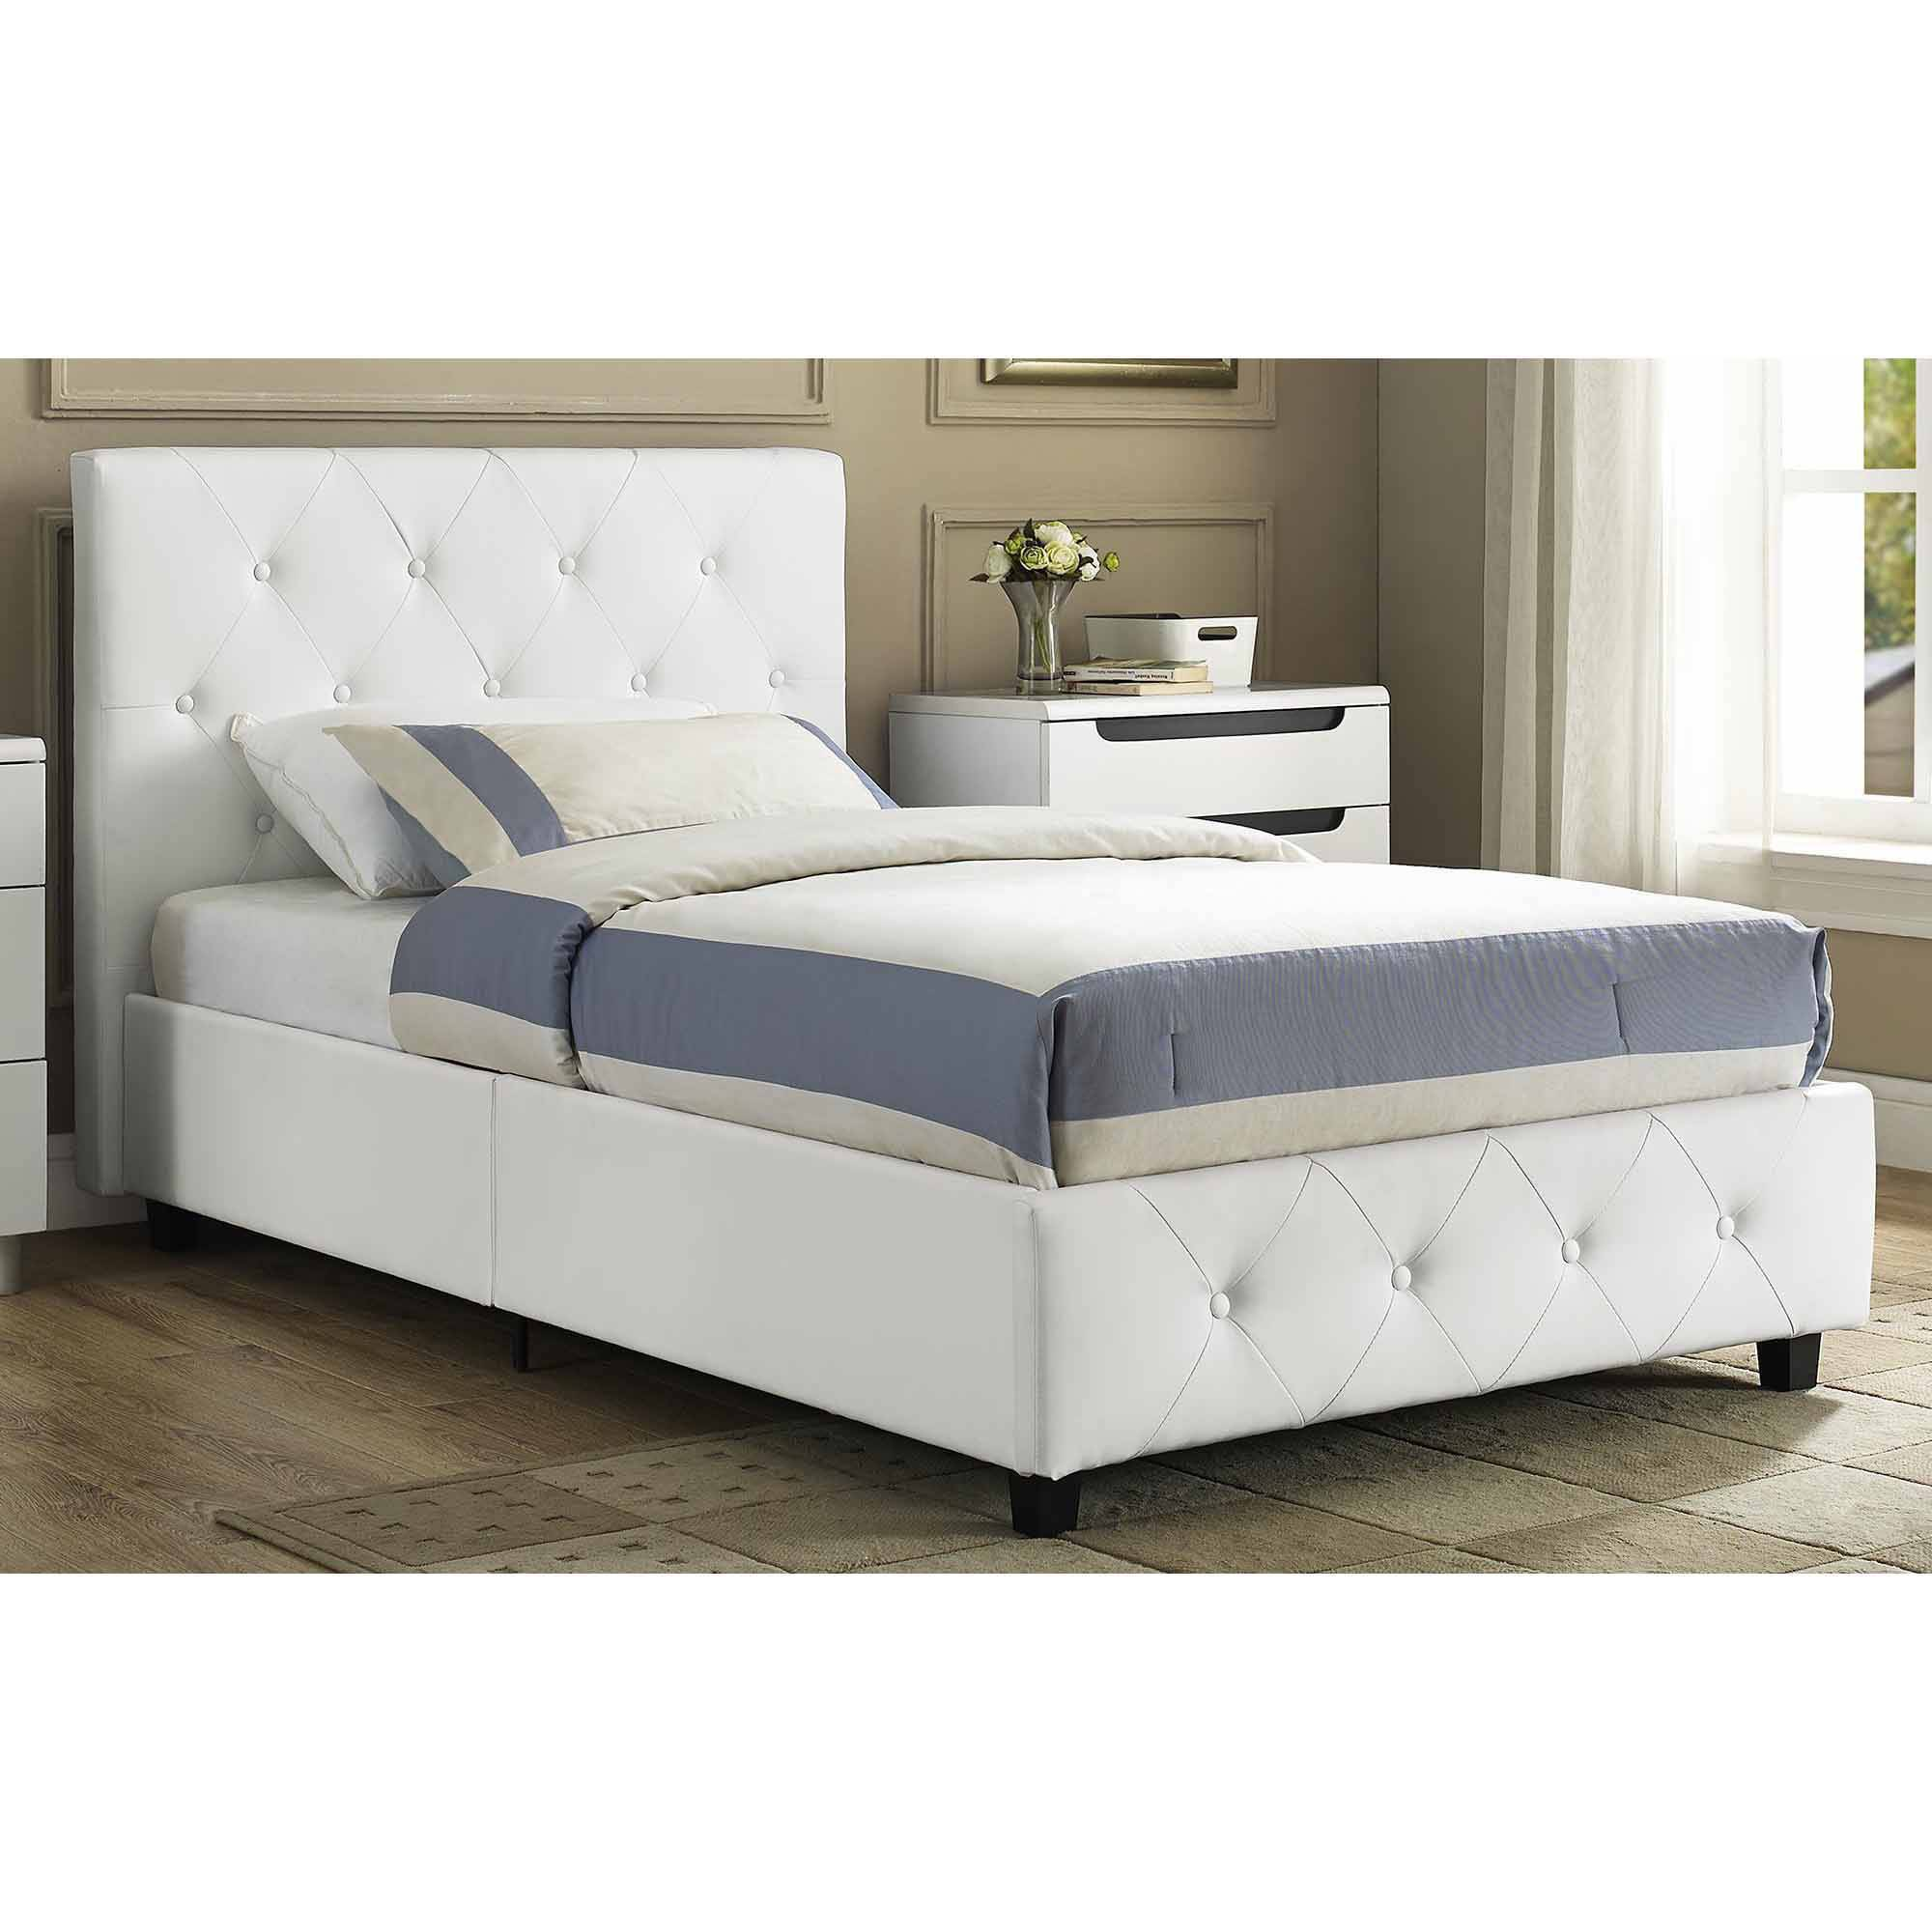 dakota faux leather upholstered bed white multiple sizes walmartcom